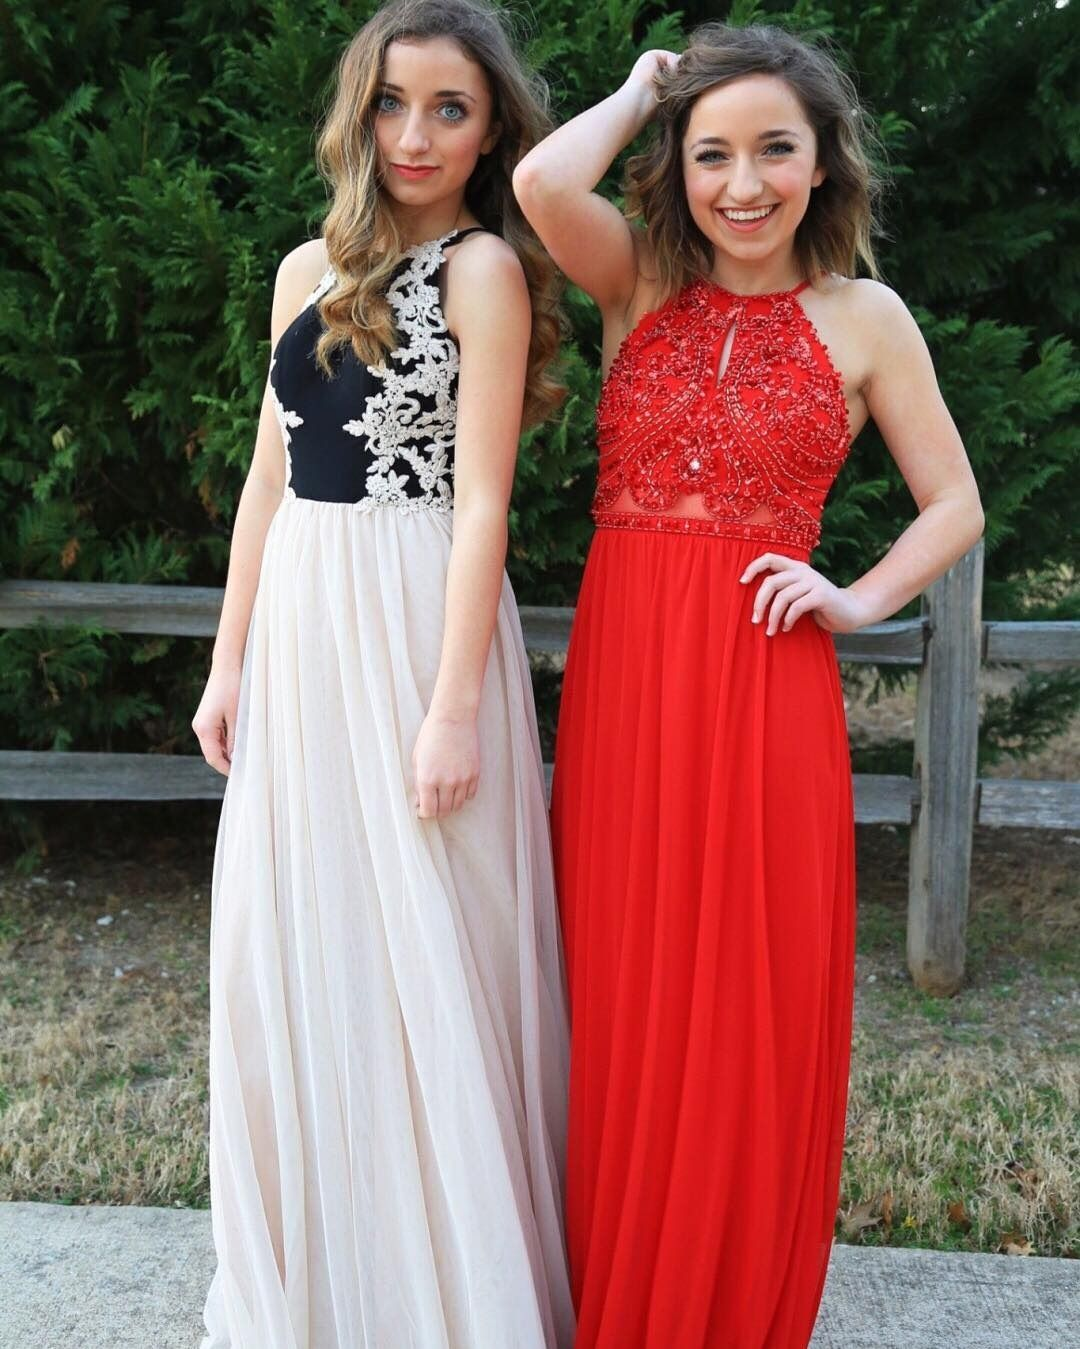 e18c0d390ce Brooklyn and Bailey in long prom dresses! Find your perfect prom night look  at David s Bridal!